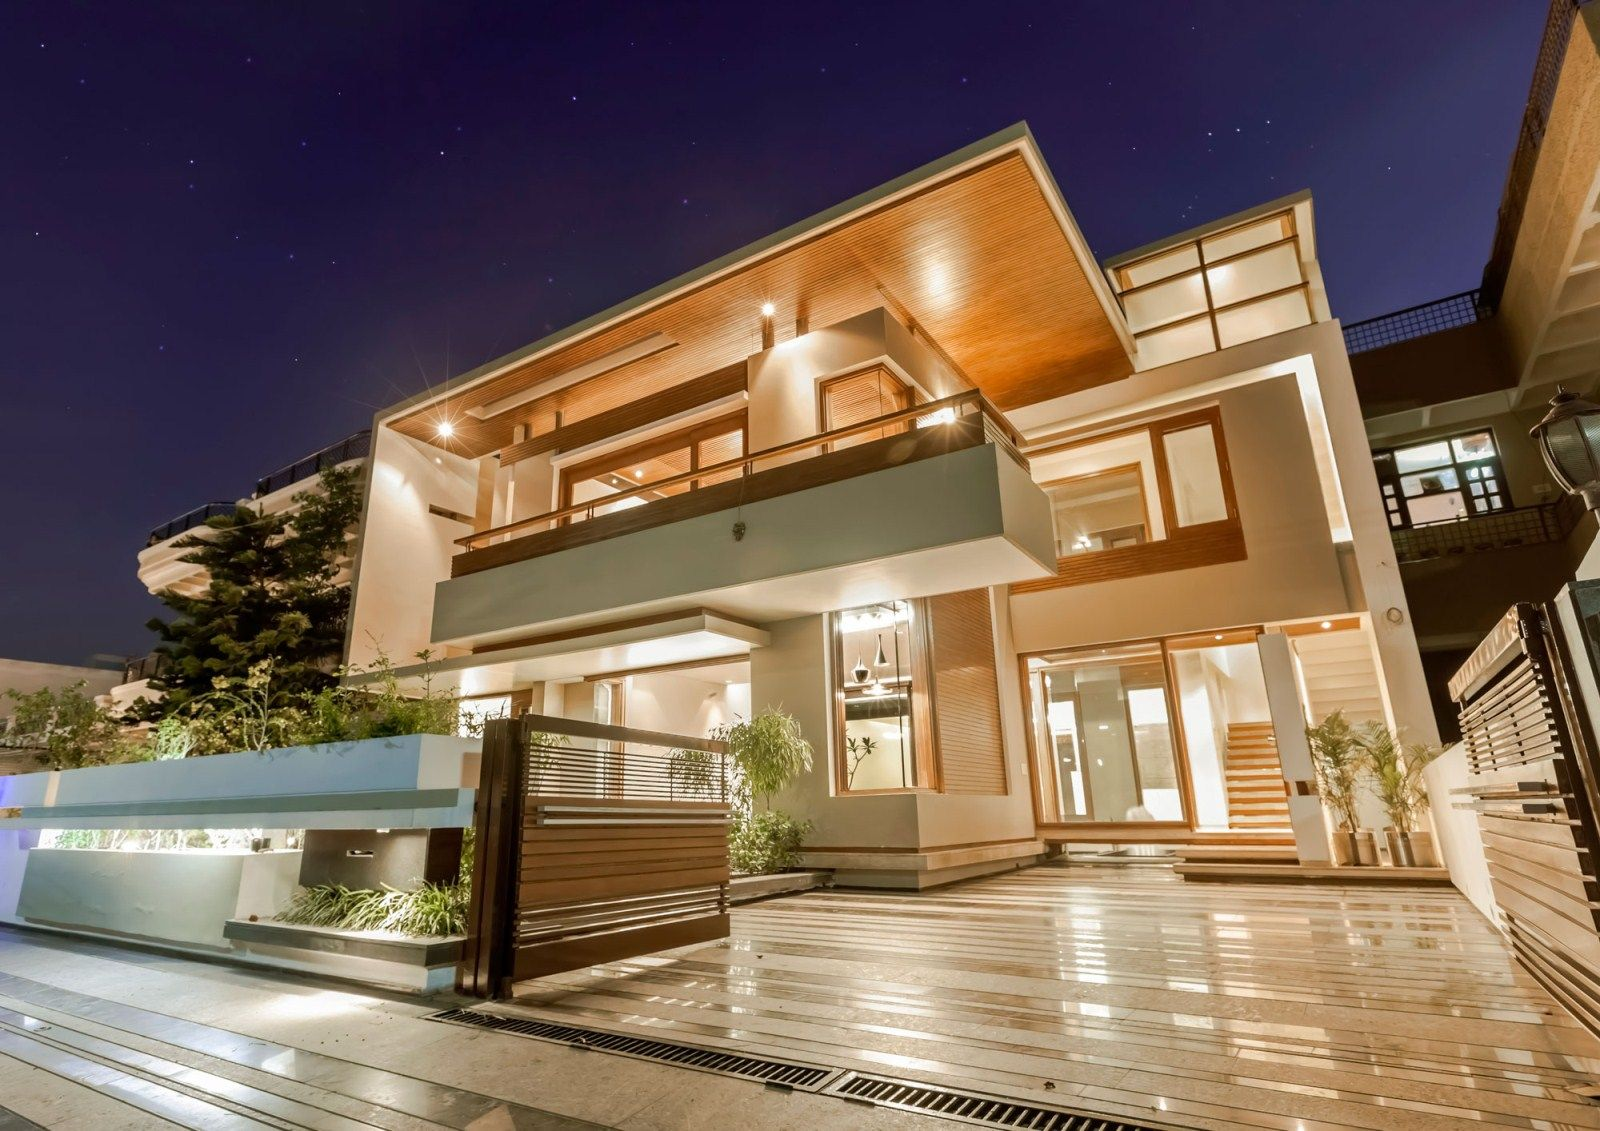 White two levels luxury tropical home design with beautiful exterior